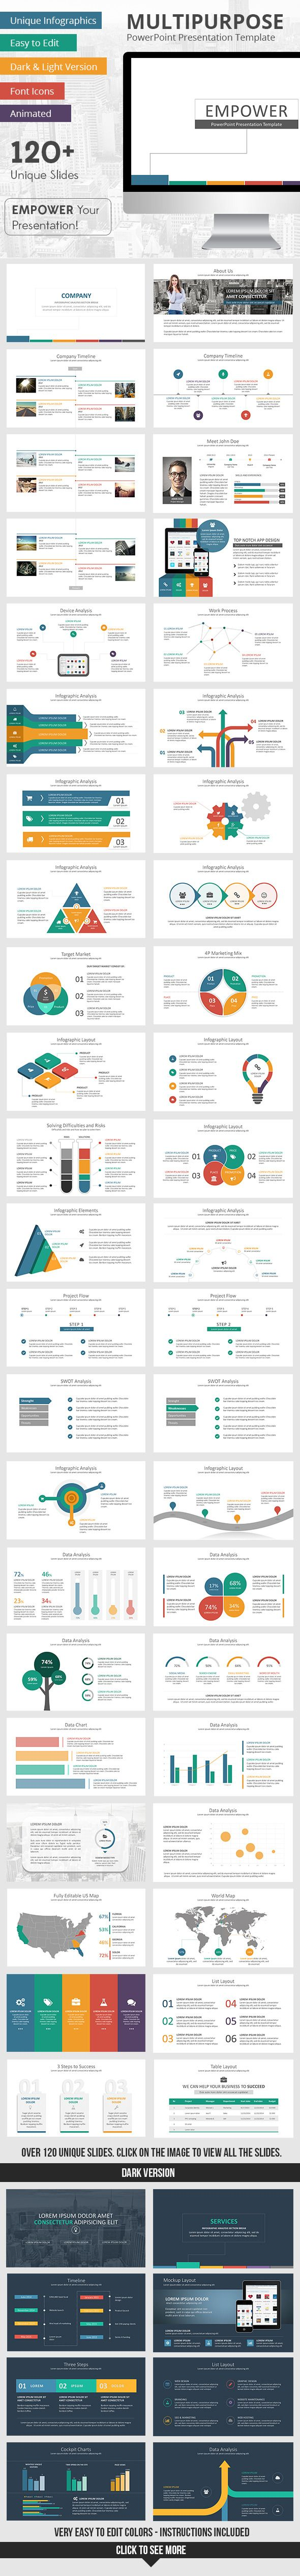 Empower PowerPoint Presentation Template PowerPoint Template / Theme / Presentation / Slides / Background / Power Point #powerpoint #template #theme